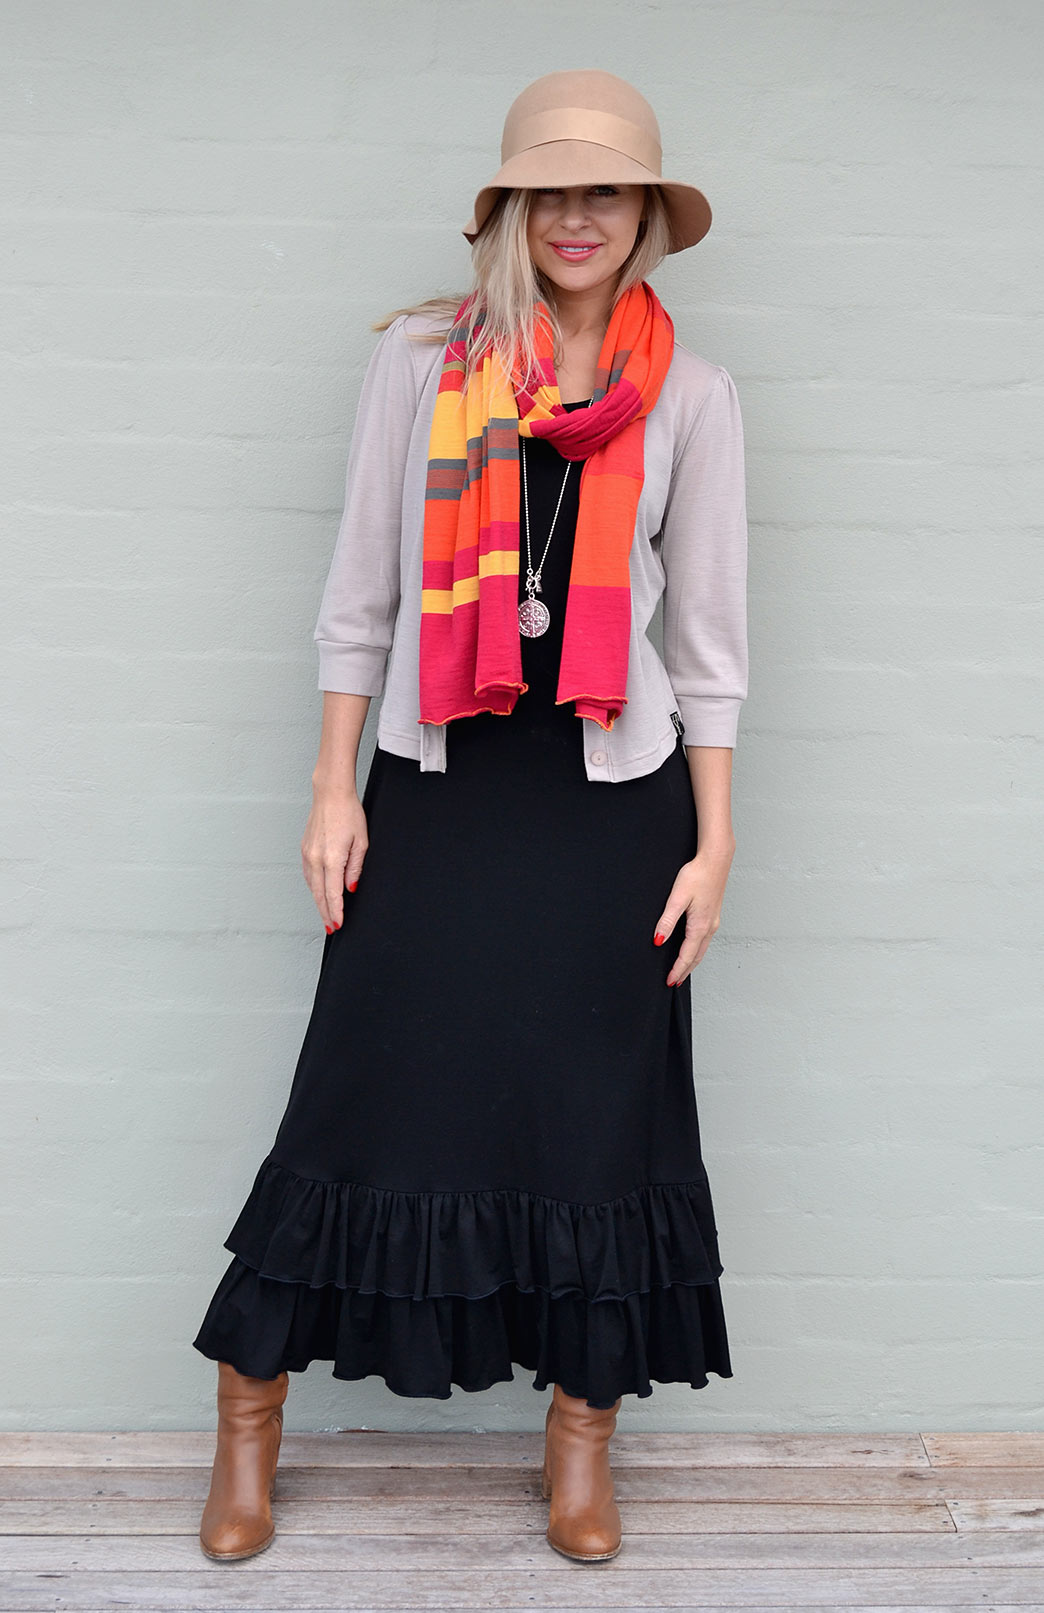 Our model wearing the Smitten Scarf in Orange Multi